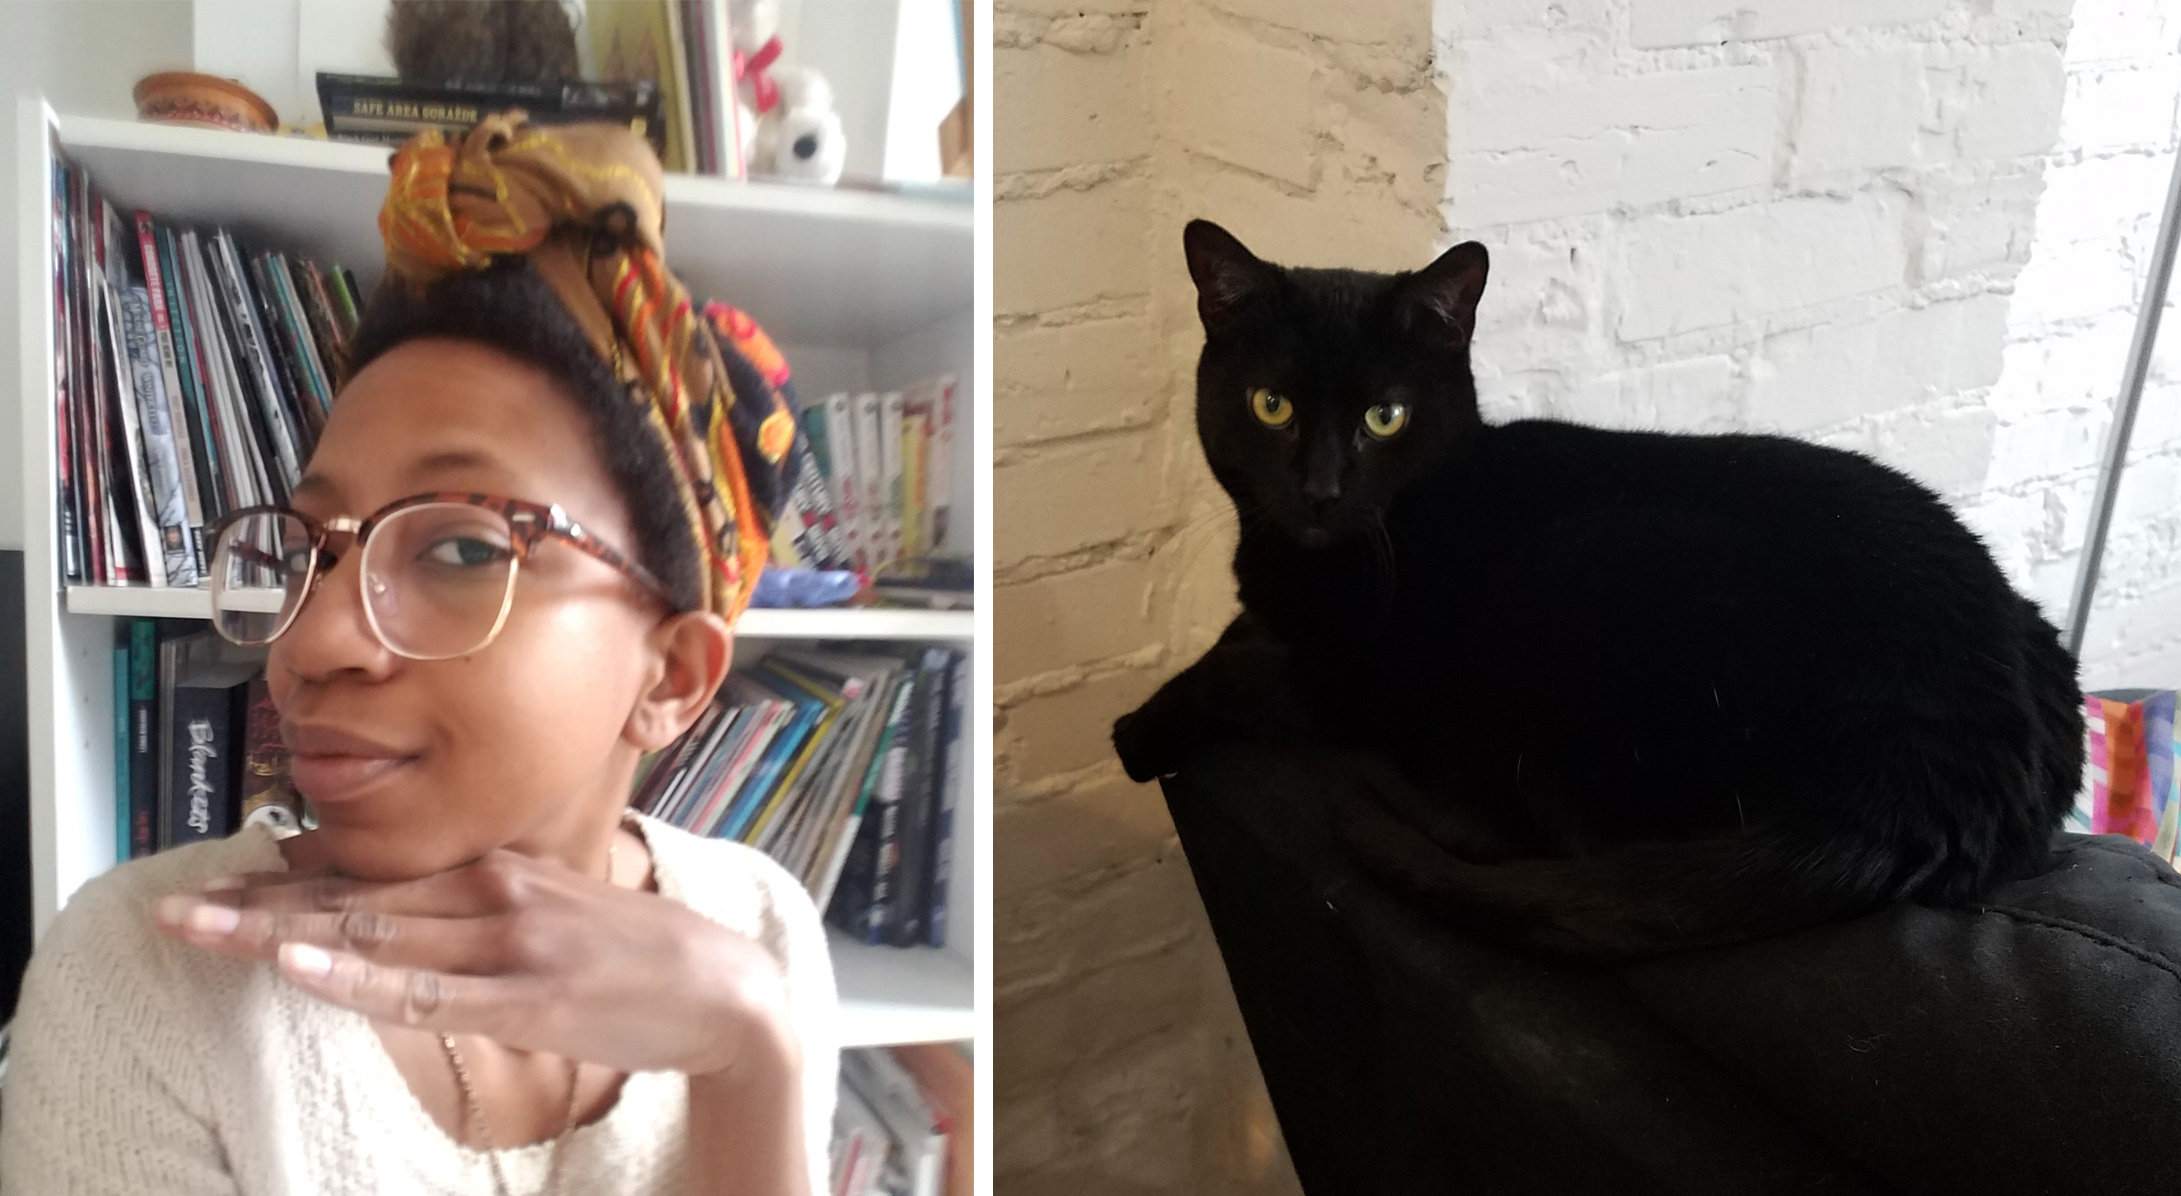 That one day I thought I looked cute VS how my cat felt about it. It's cool, Qat. You don't have to love me. I love me. Most days, anyway. So there.